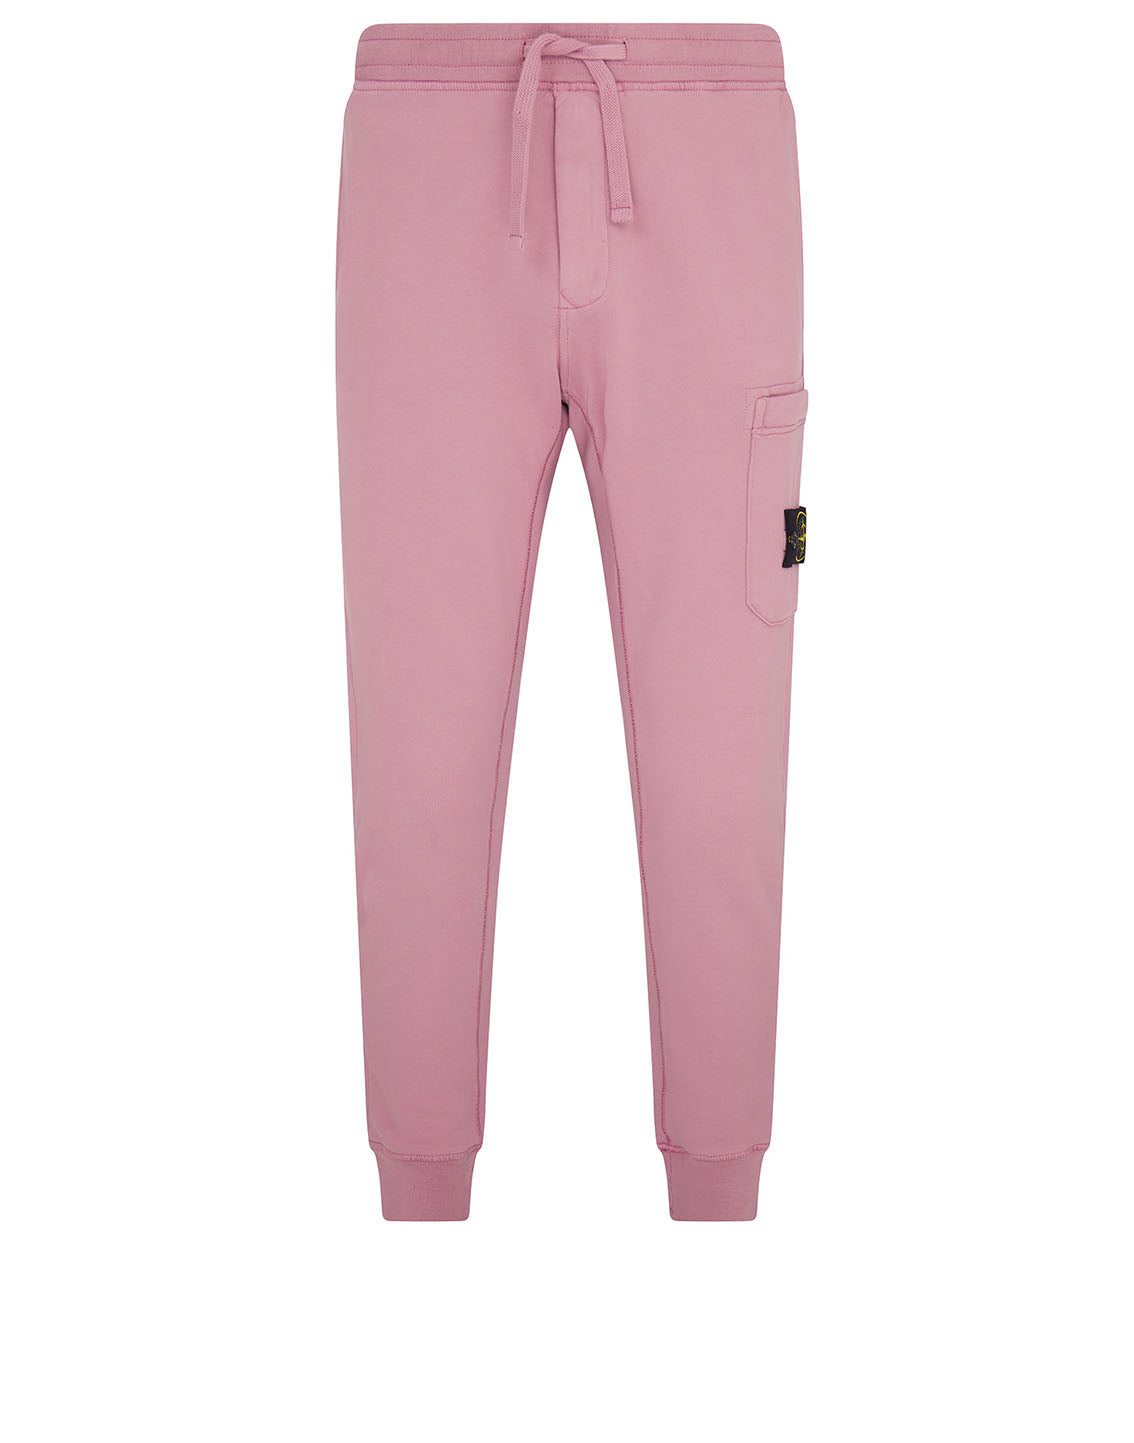 64551 Fleece Pants in Rose Quartz